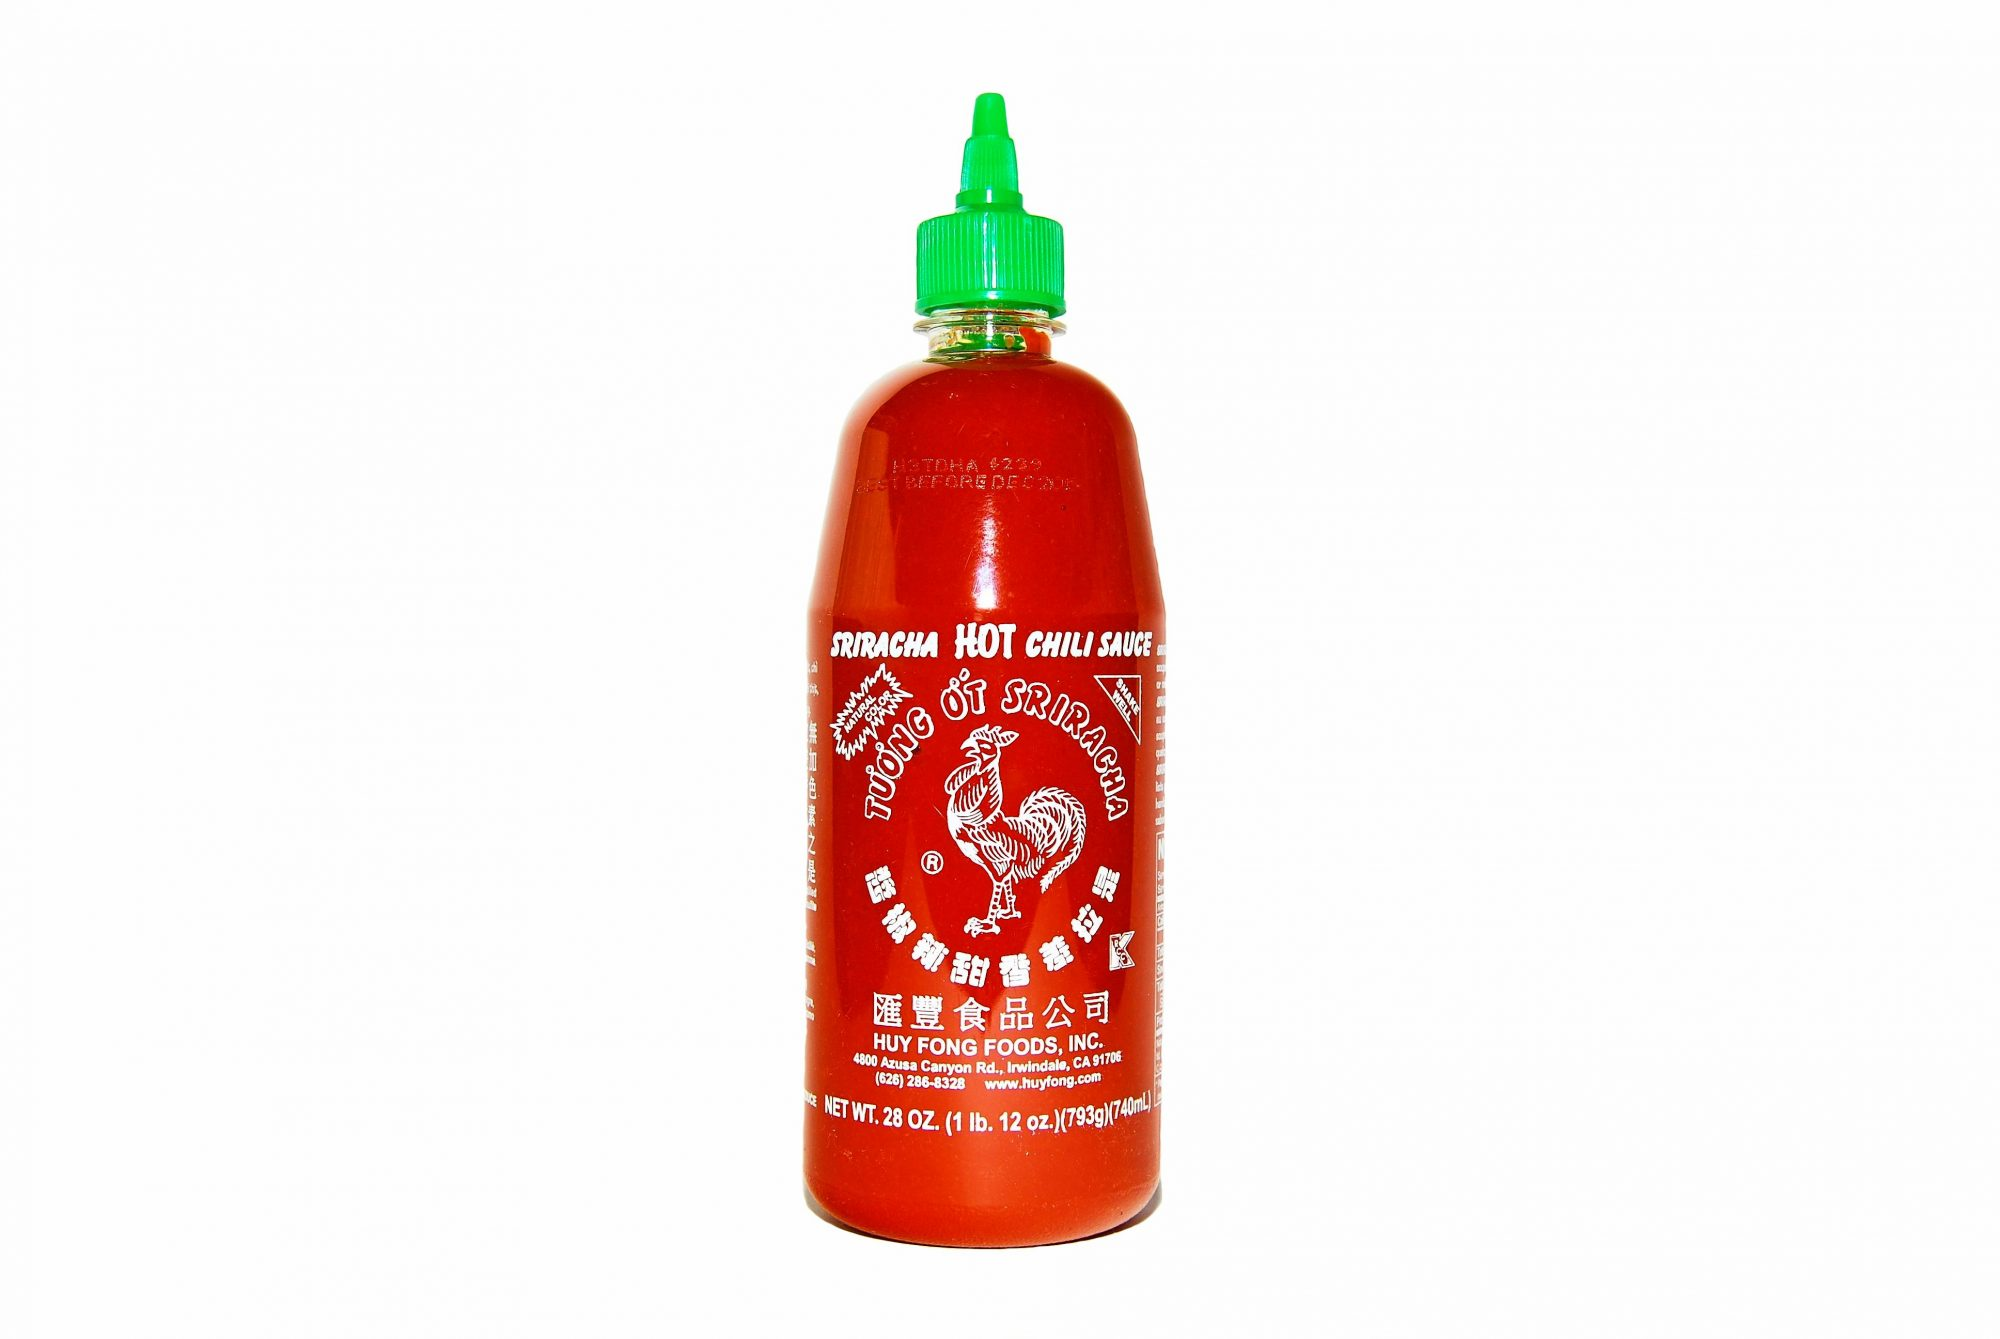 getty-sriracha-bottle-image